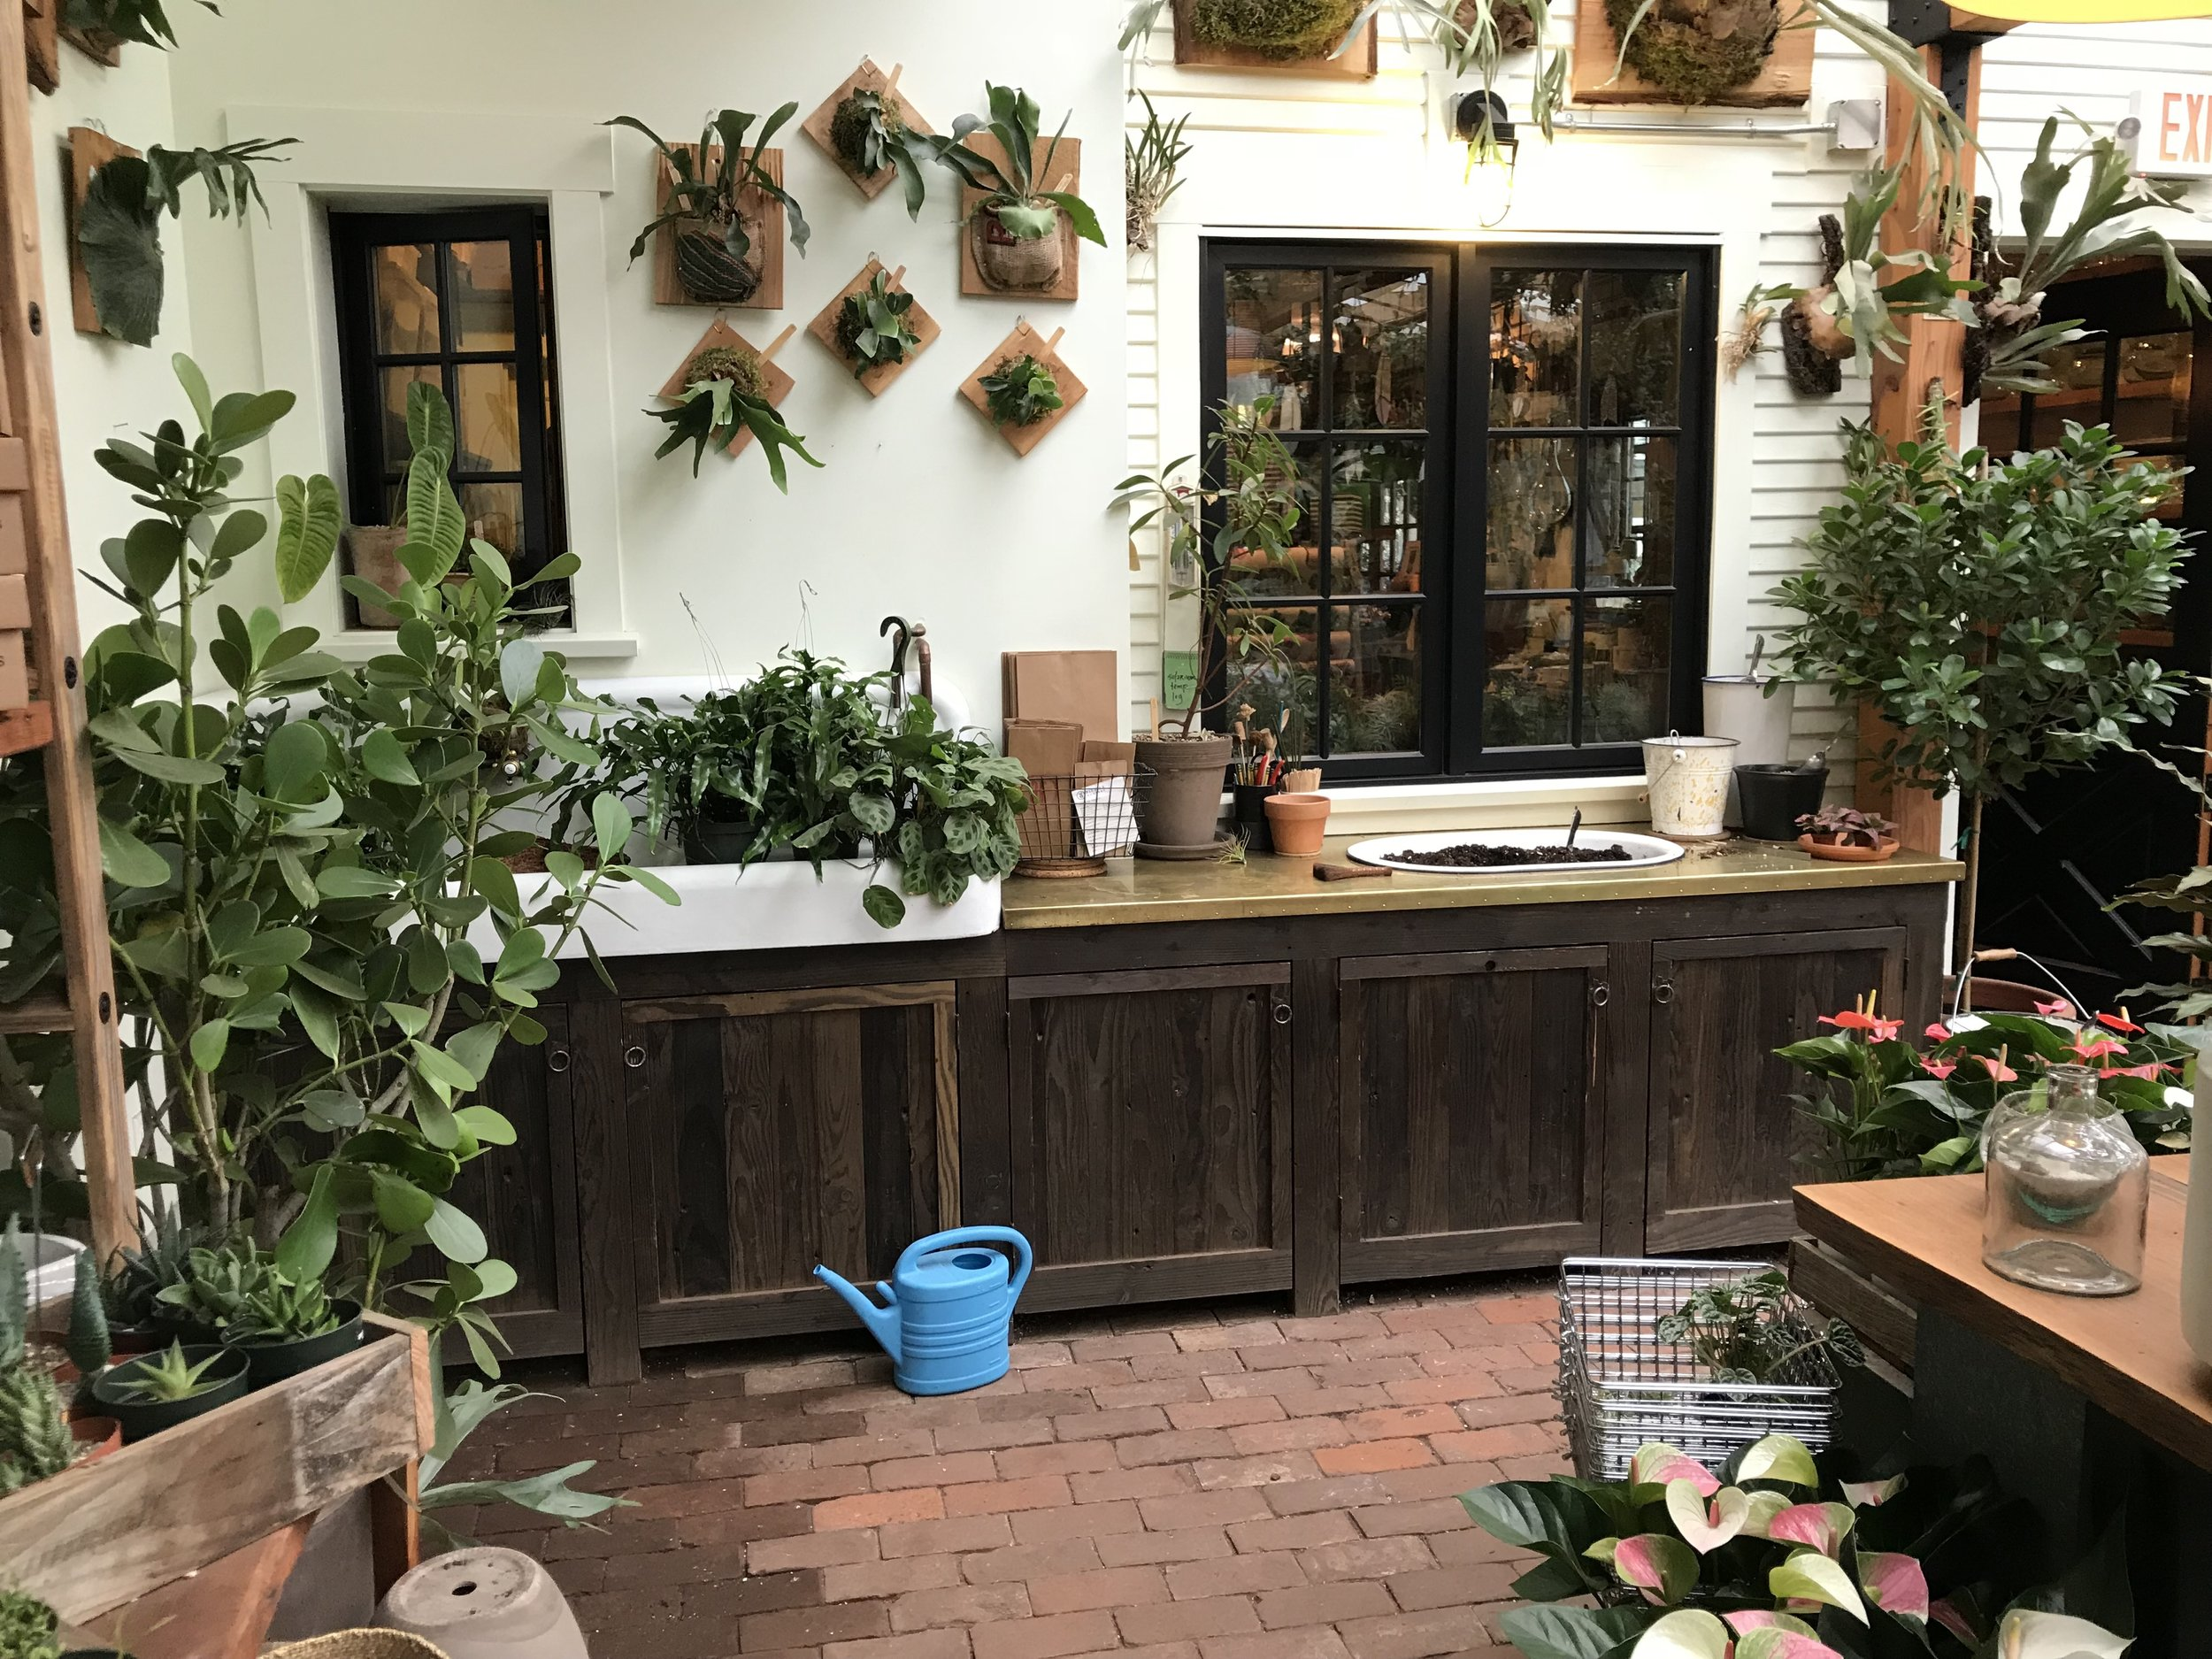 Pistils' attractive sink & potting bench area, with Staghorn Ferns